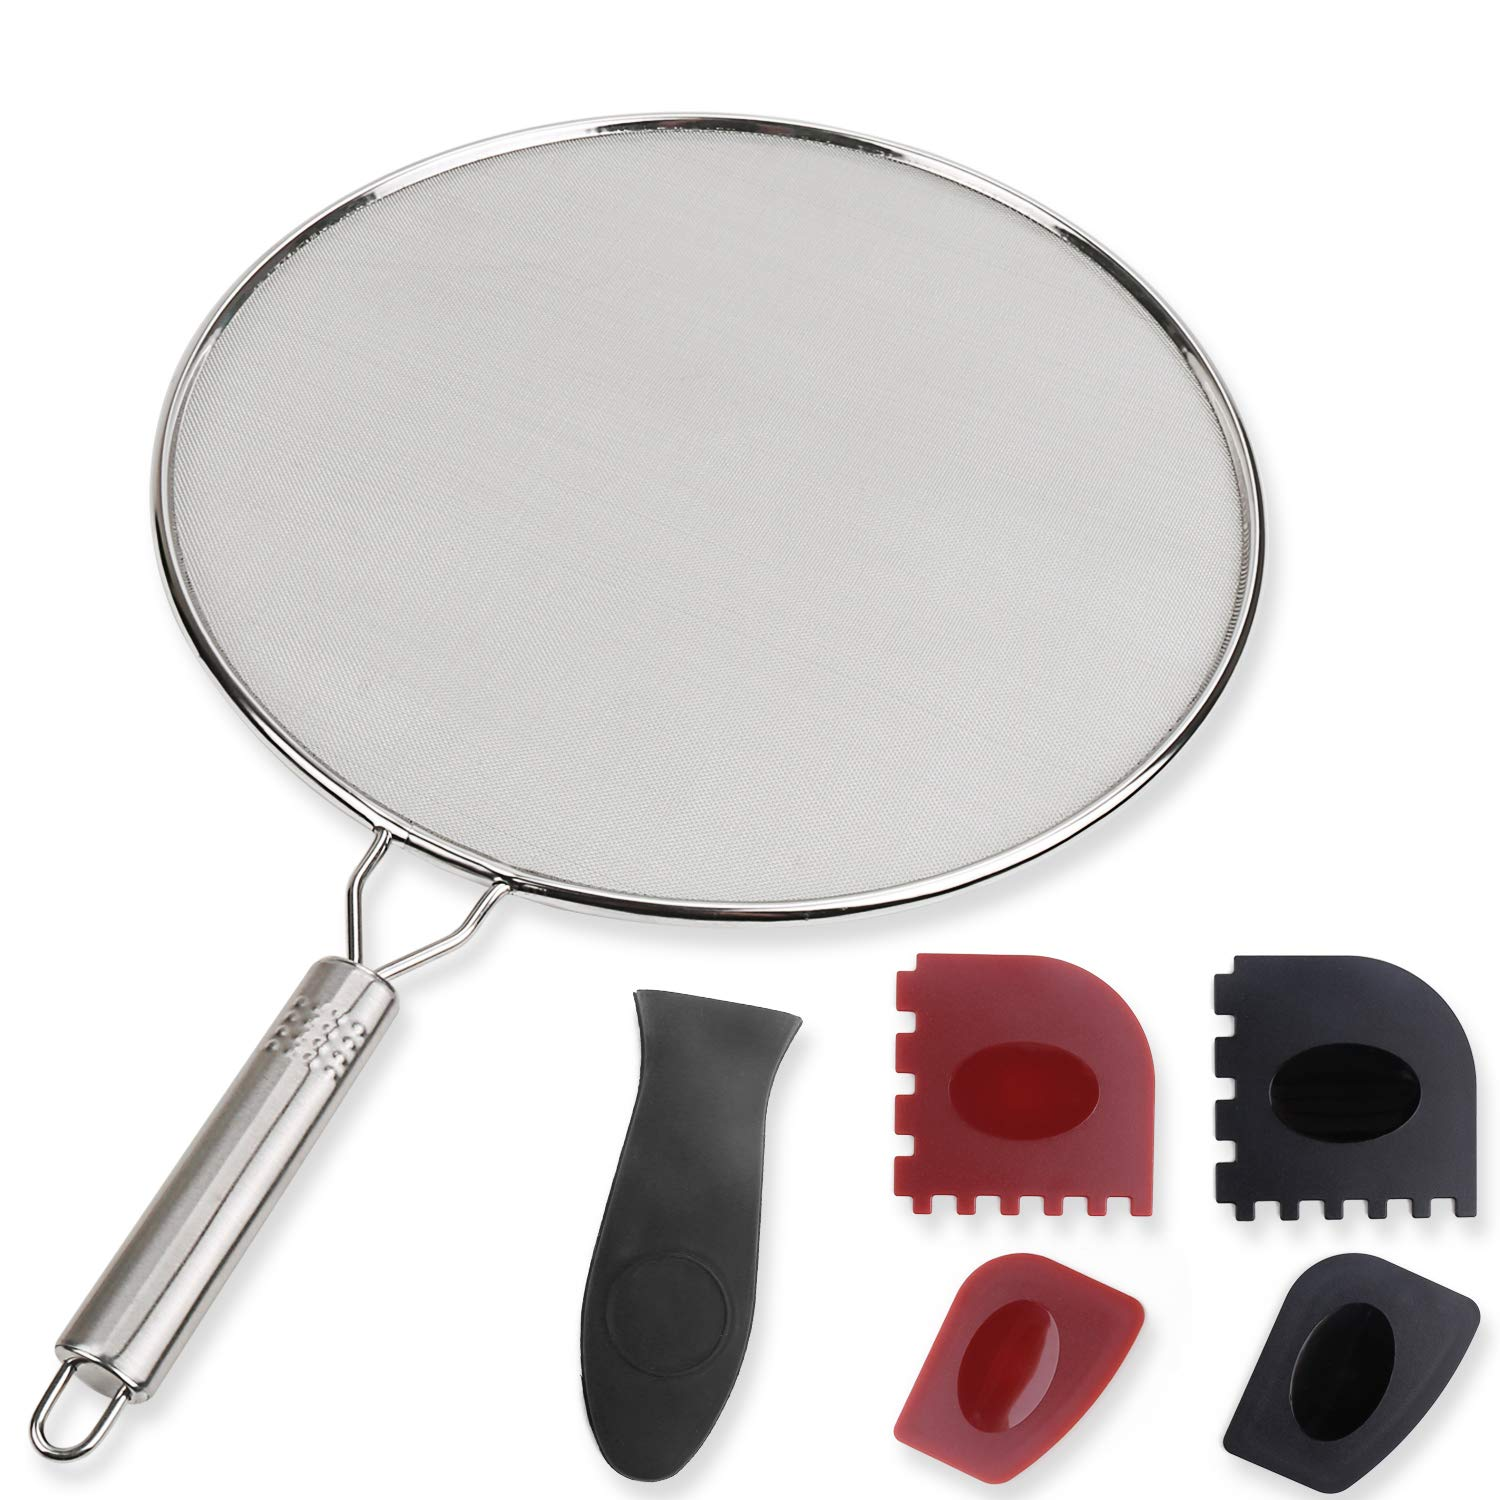 HostStyleZ Splatter Screen Set - 17.52'' Stainless Steel Grease Guard - with Silicone Hot Handle Holder - Plus Grill & Cooking Pan Scrapers - BPA Free - Oil Shield for Frying Pans and Skillets by HostStyleZ